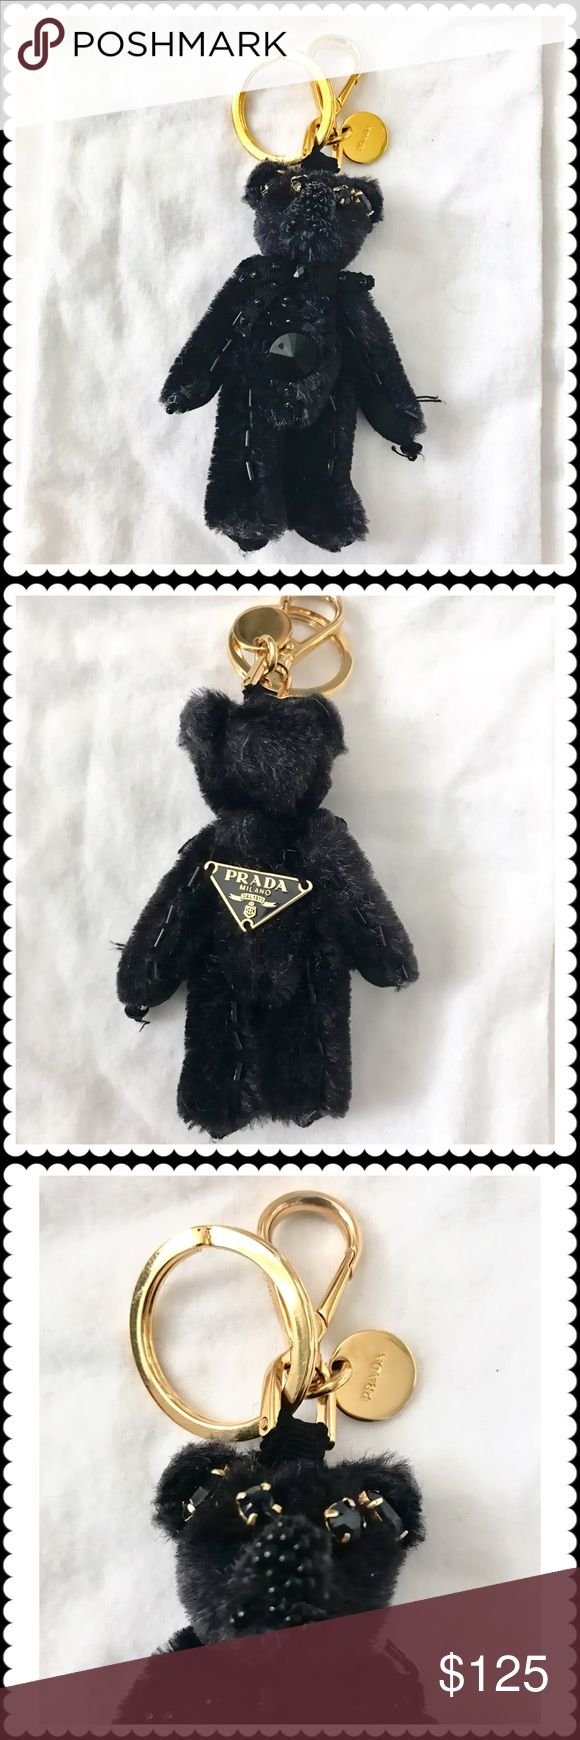 🆕Prada bag charm black teddy bear with beard. Prada bag charm black fur teddy bear with tonal beads. Pre loved. In good condition. All my items are authentic. As a Prada freak I only buy Prada items from Prada stores. Prada Accessories